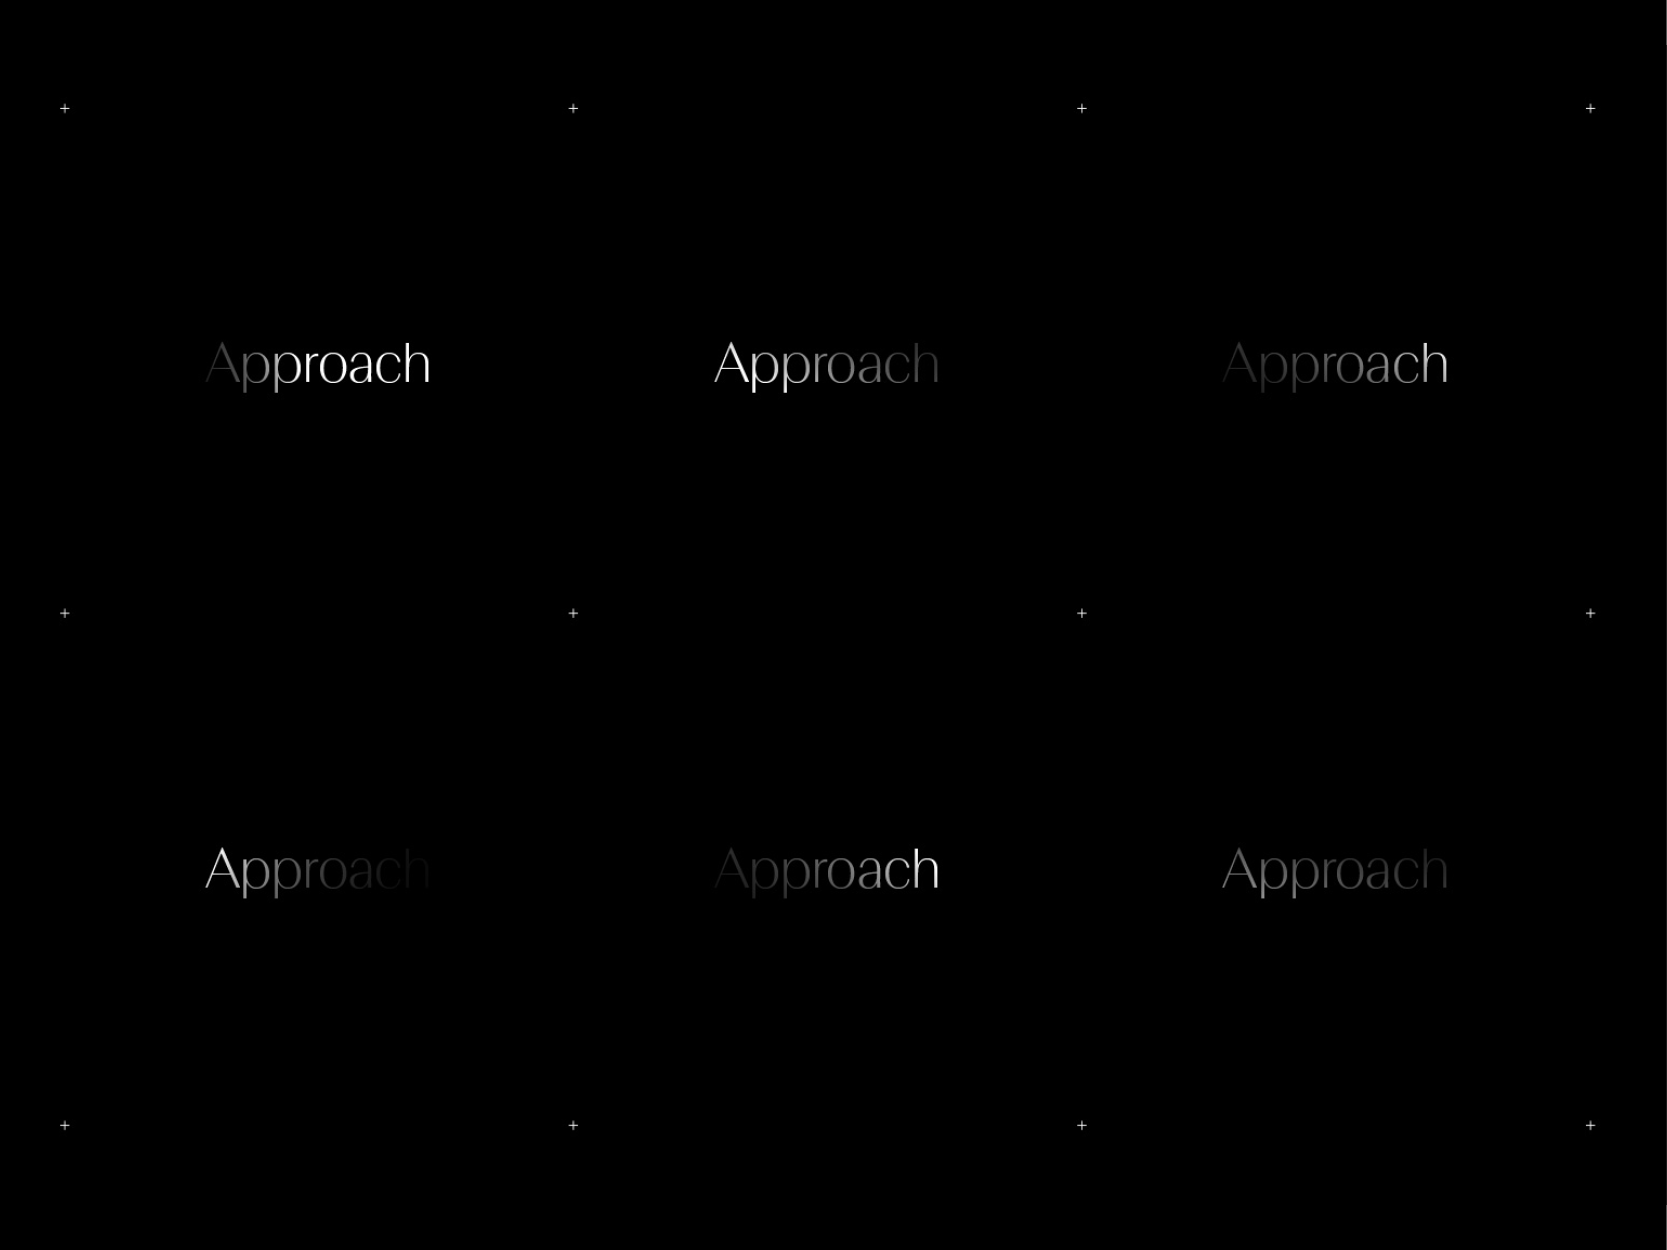 Approach_images5